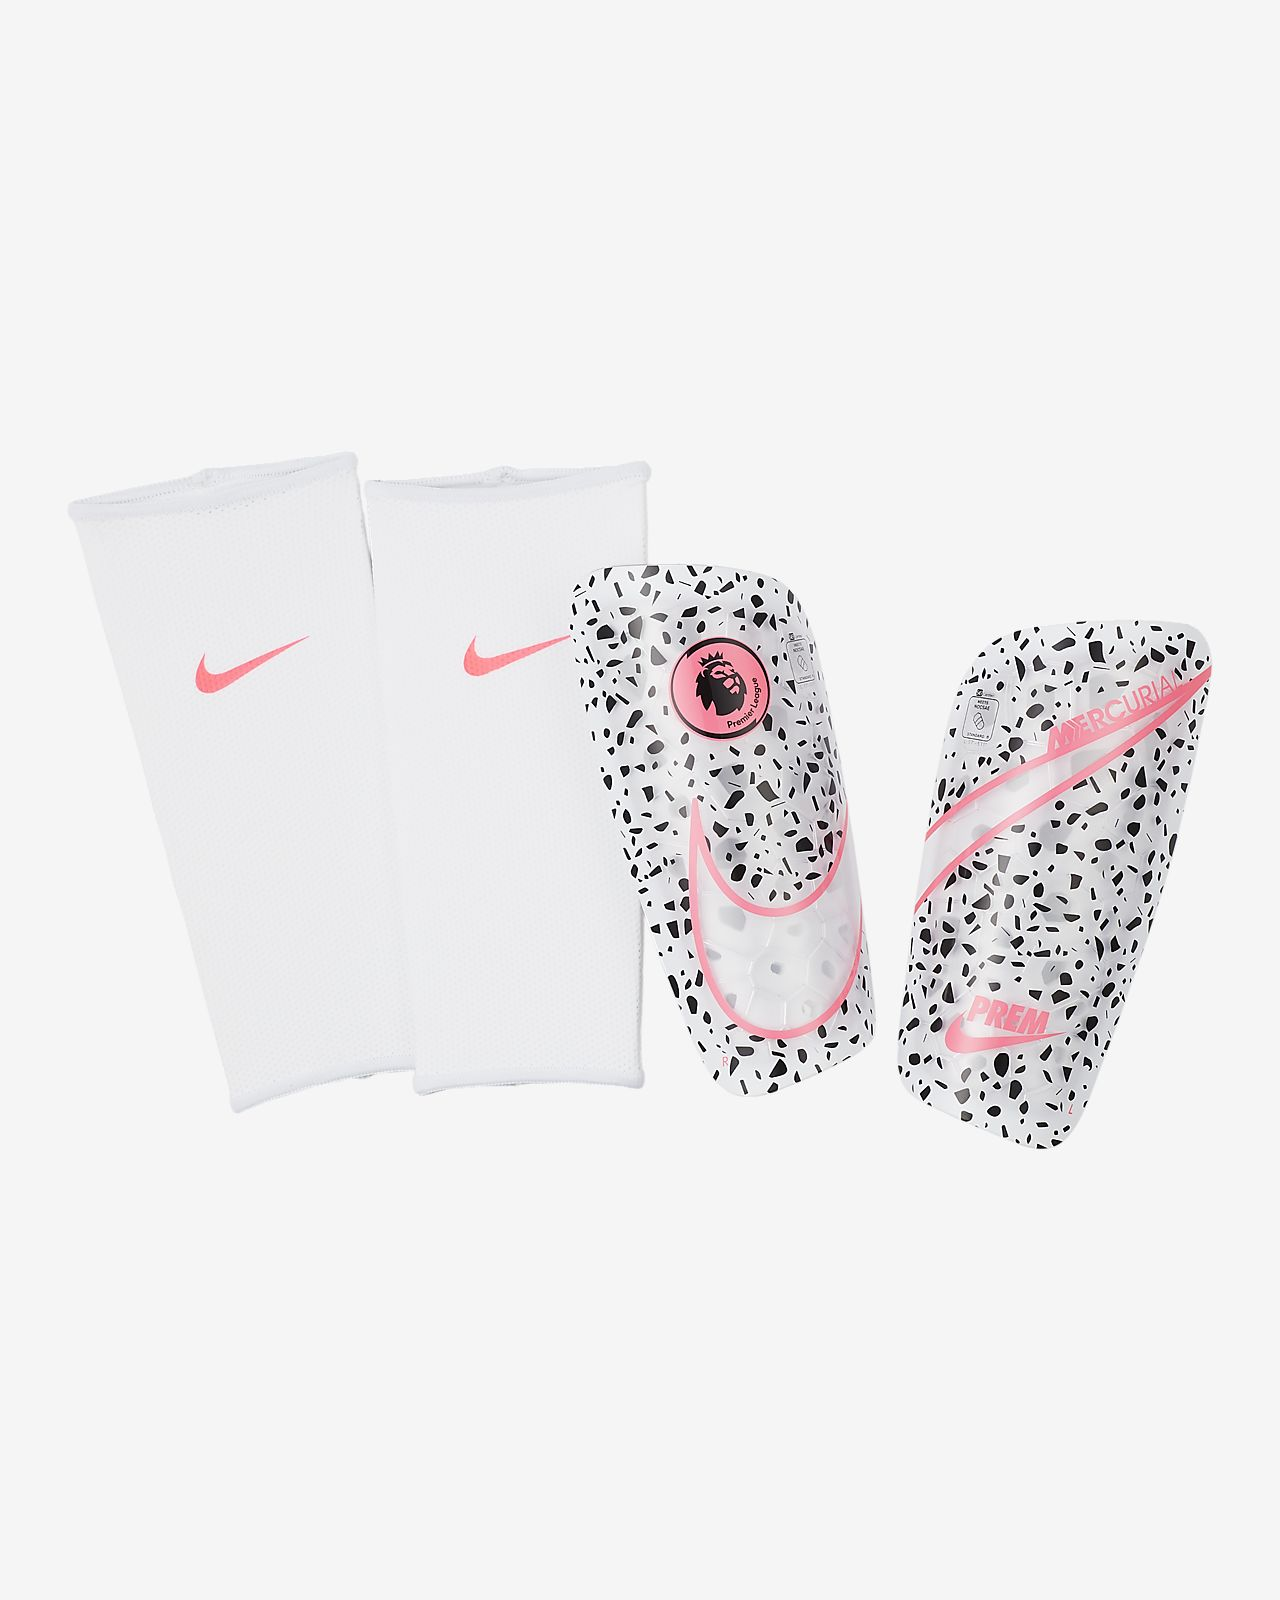 Nike Mercurial Lite Premier League Football Shinguards